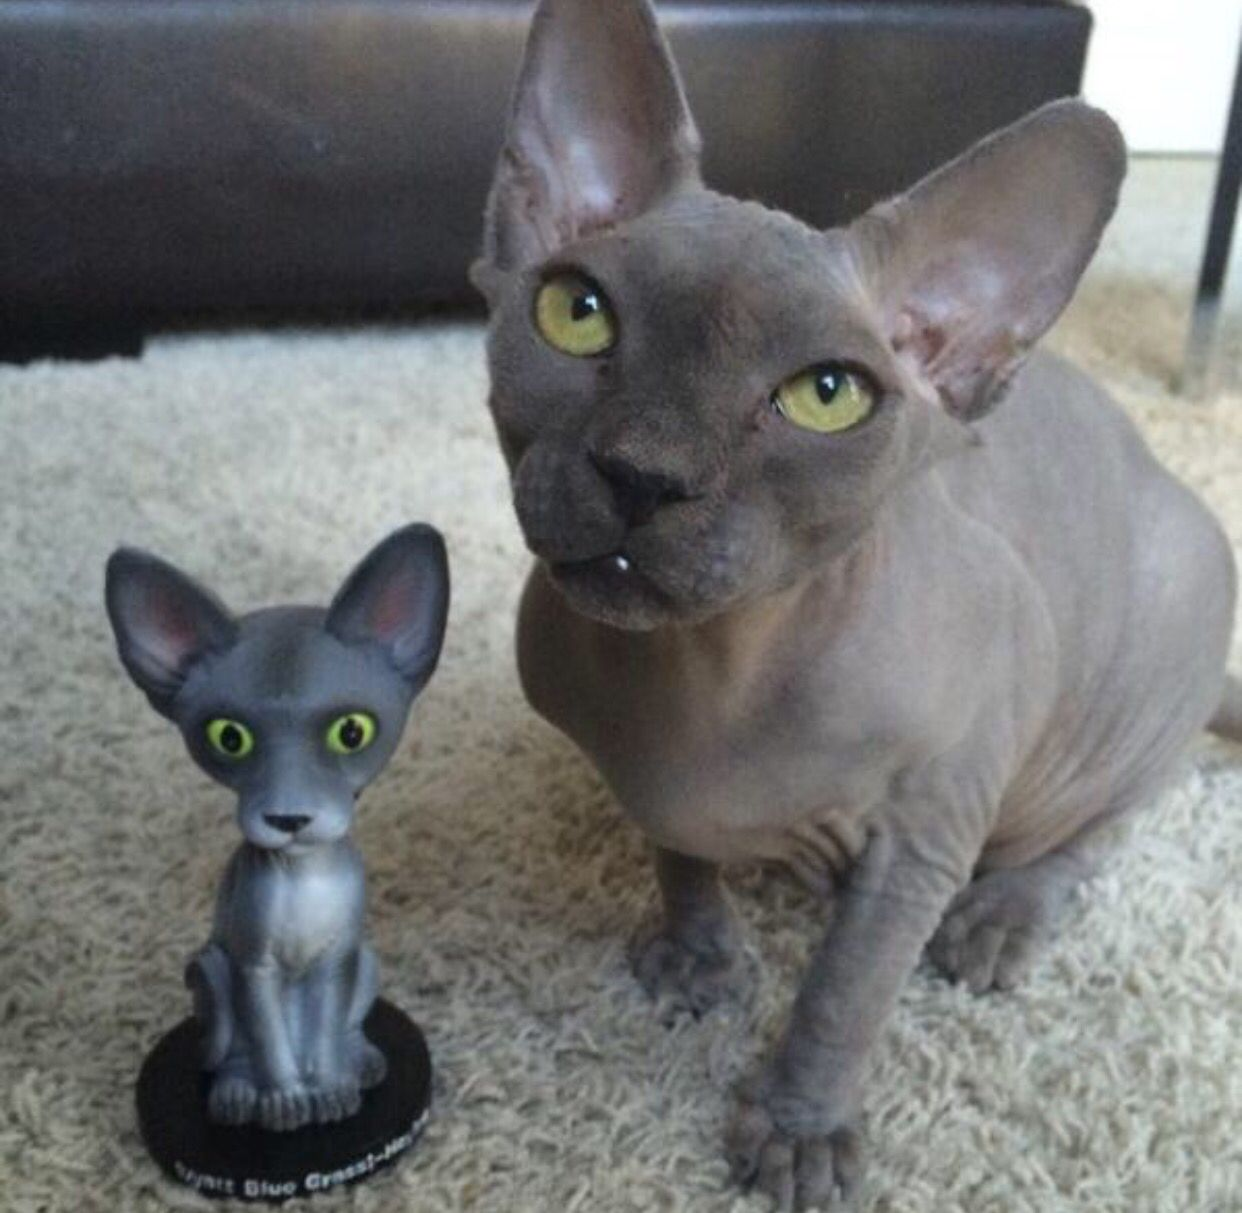 I love their cat Wyatt... Go check out his bobble head